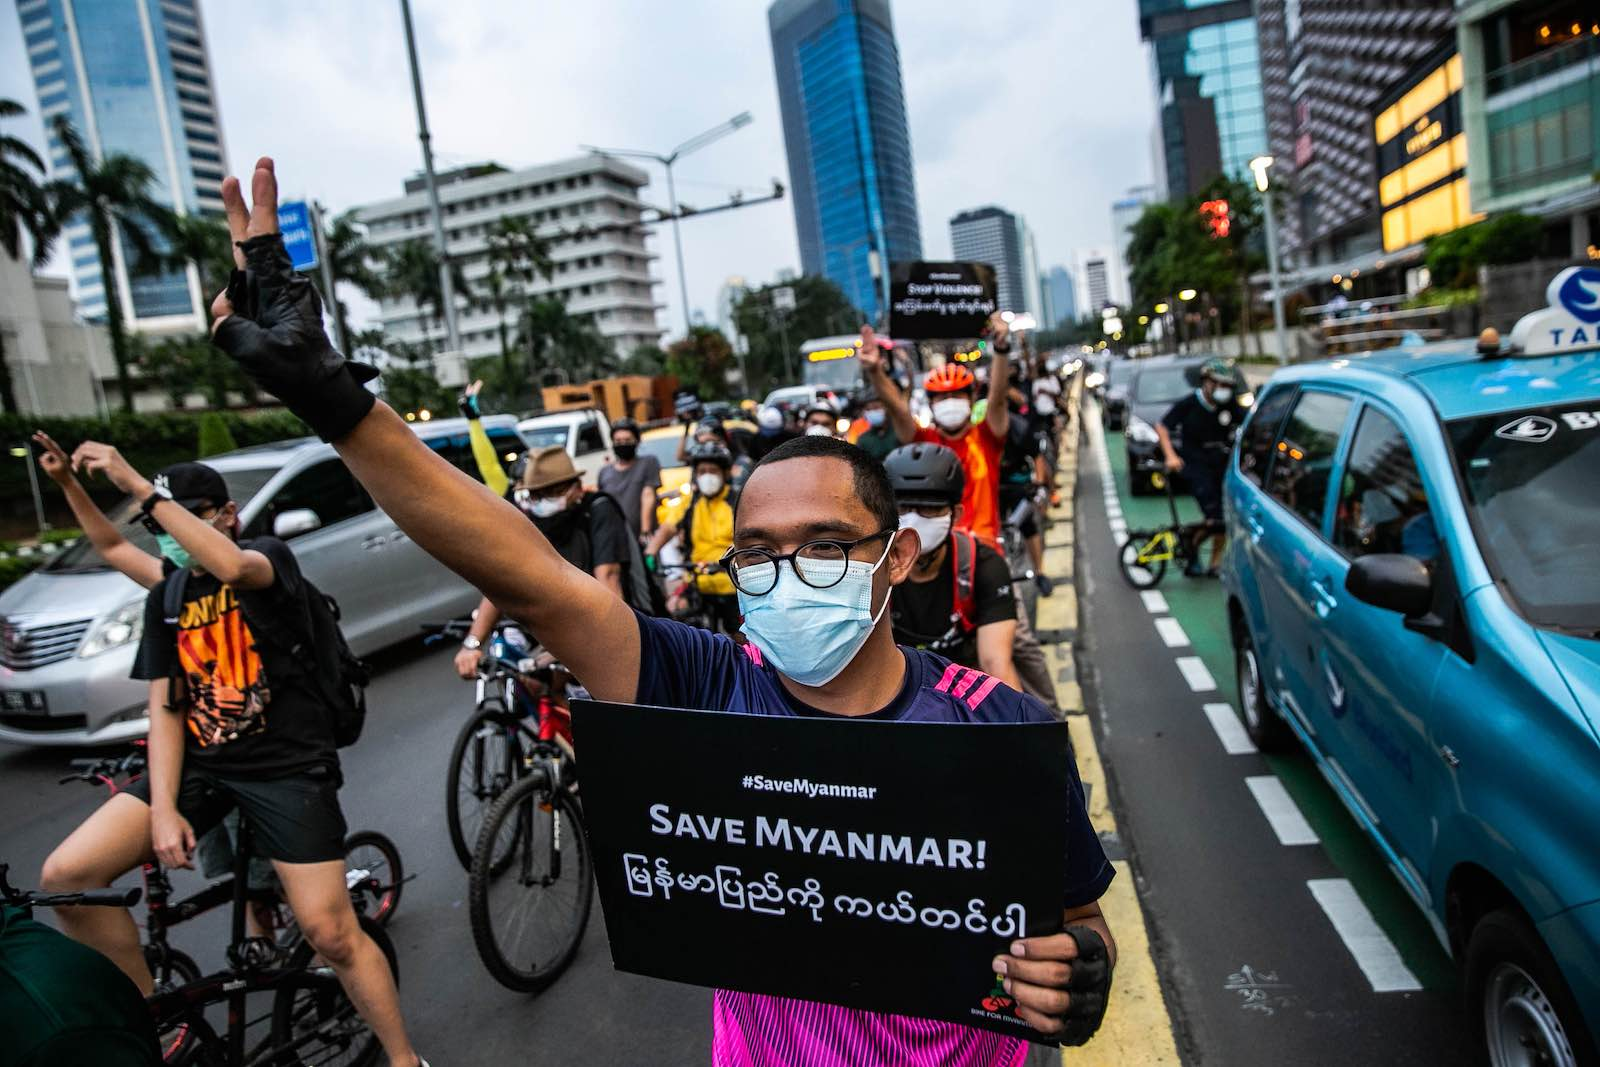 Indonesian bikers protest against the Myanmar military coup, outside the ASEAN secretariat building in Jakarta, 17 April 2021 (Jepayona Delita/Jefta Images/Barcroft Media via Getty Images)